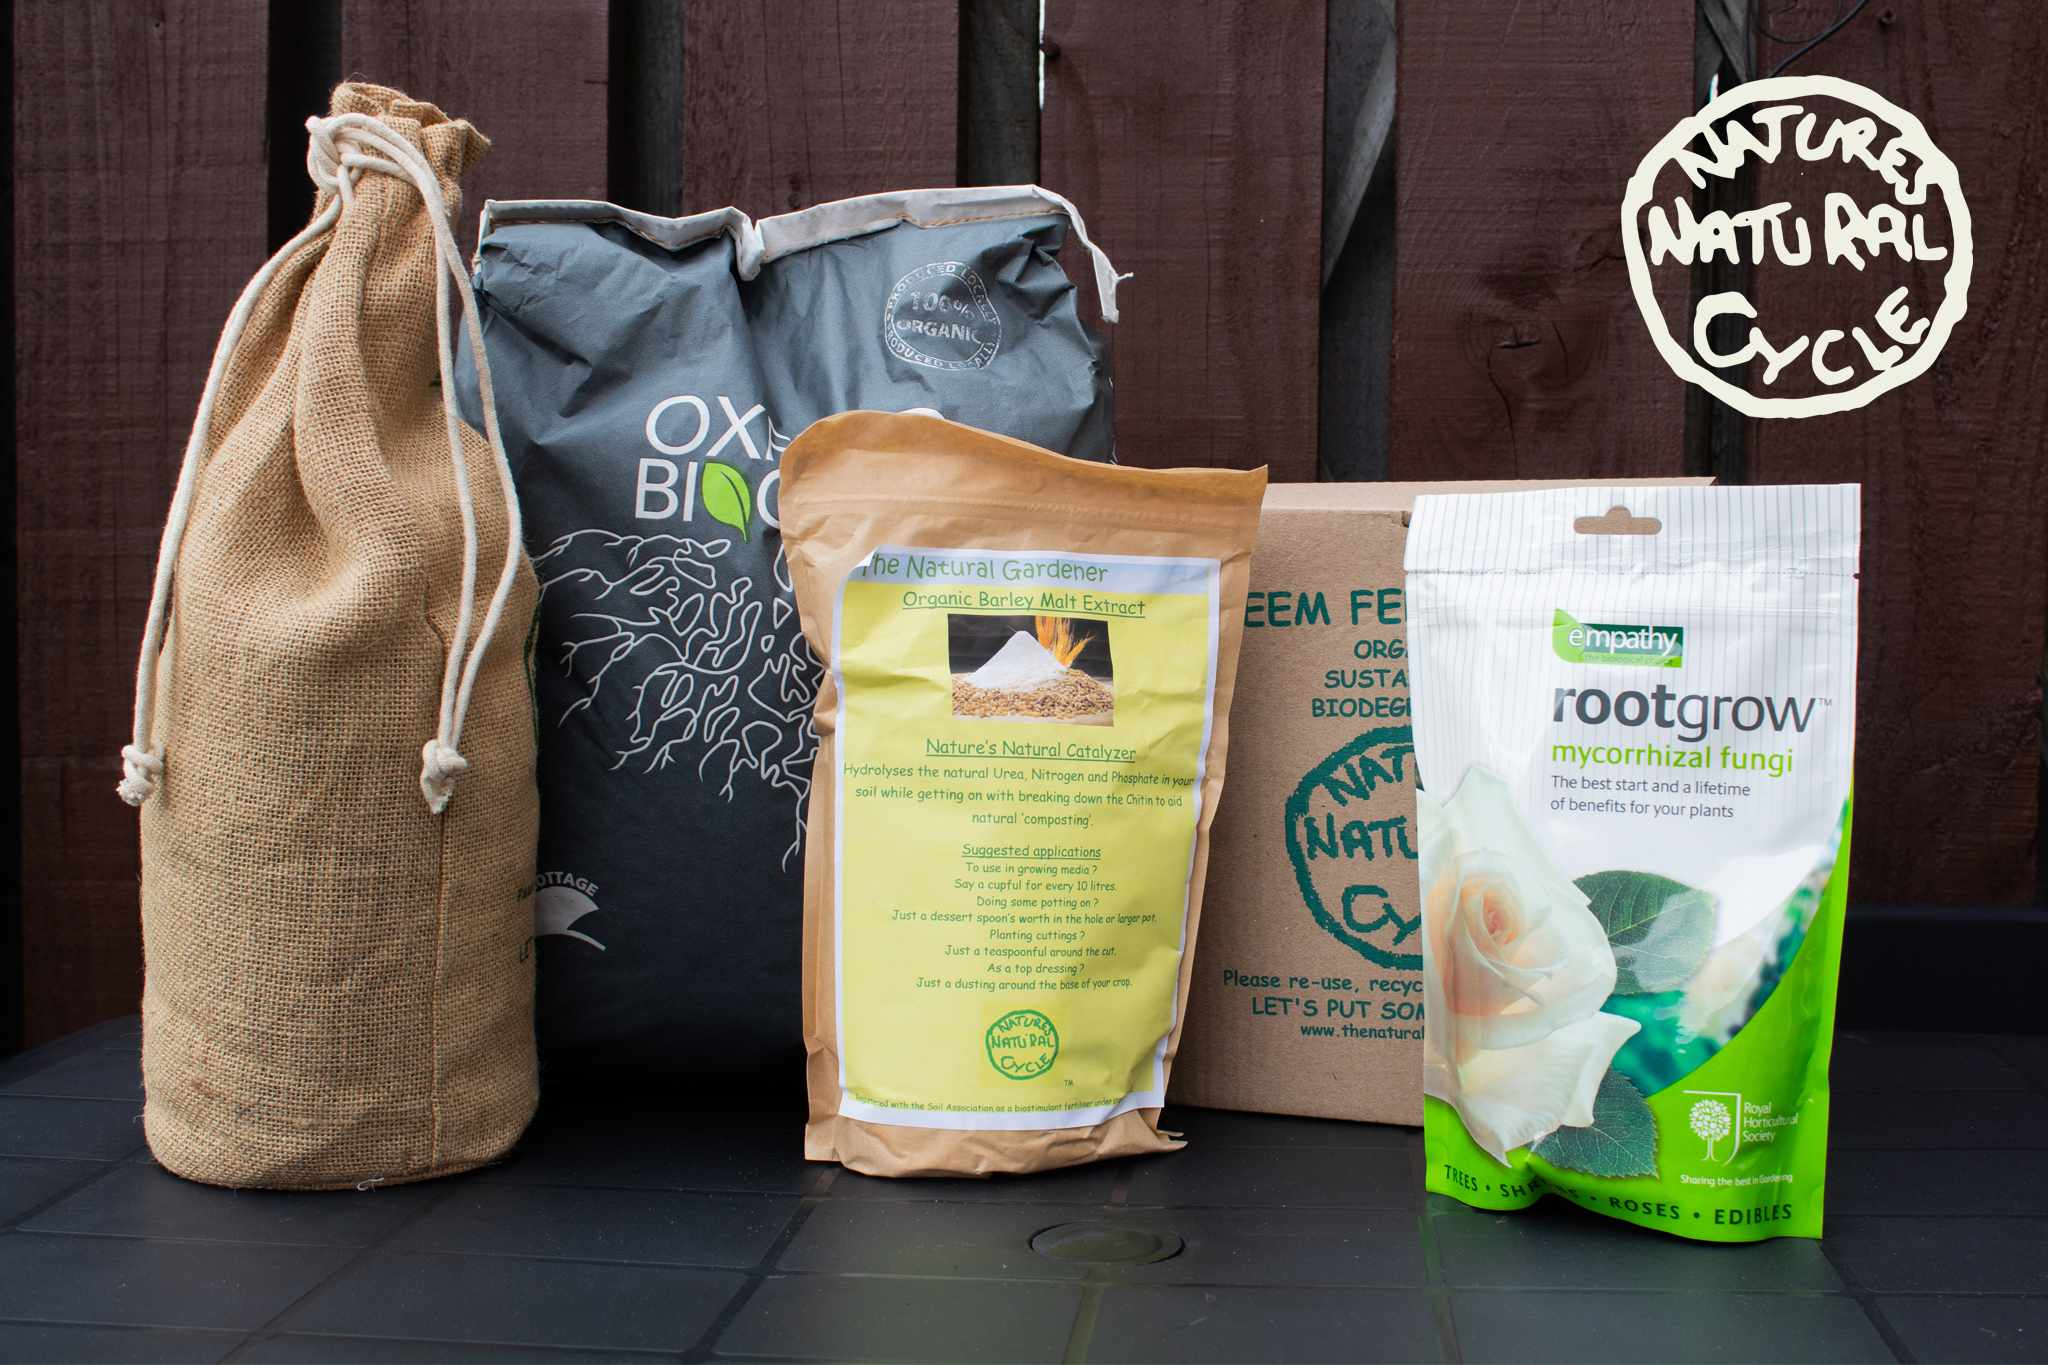 Win a bundle from The Natural Gardener